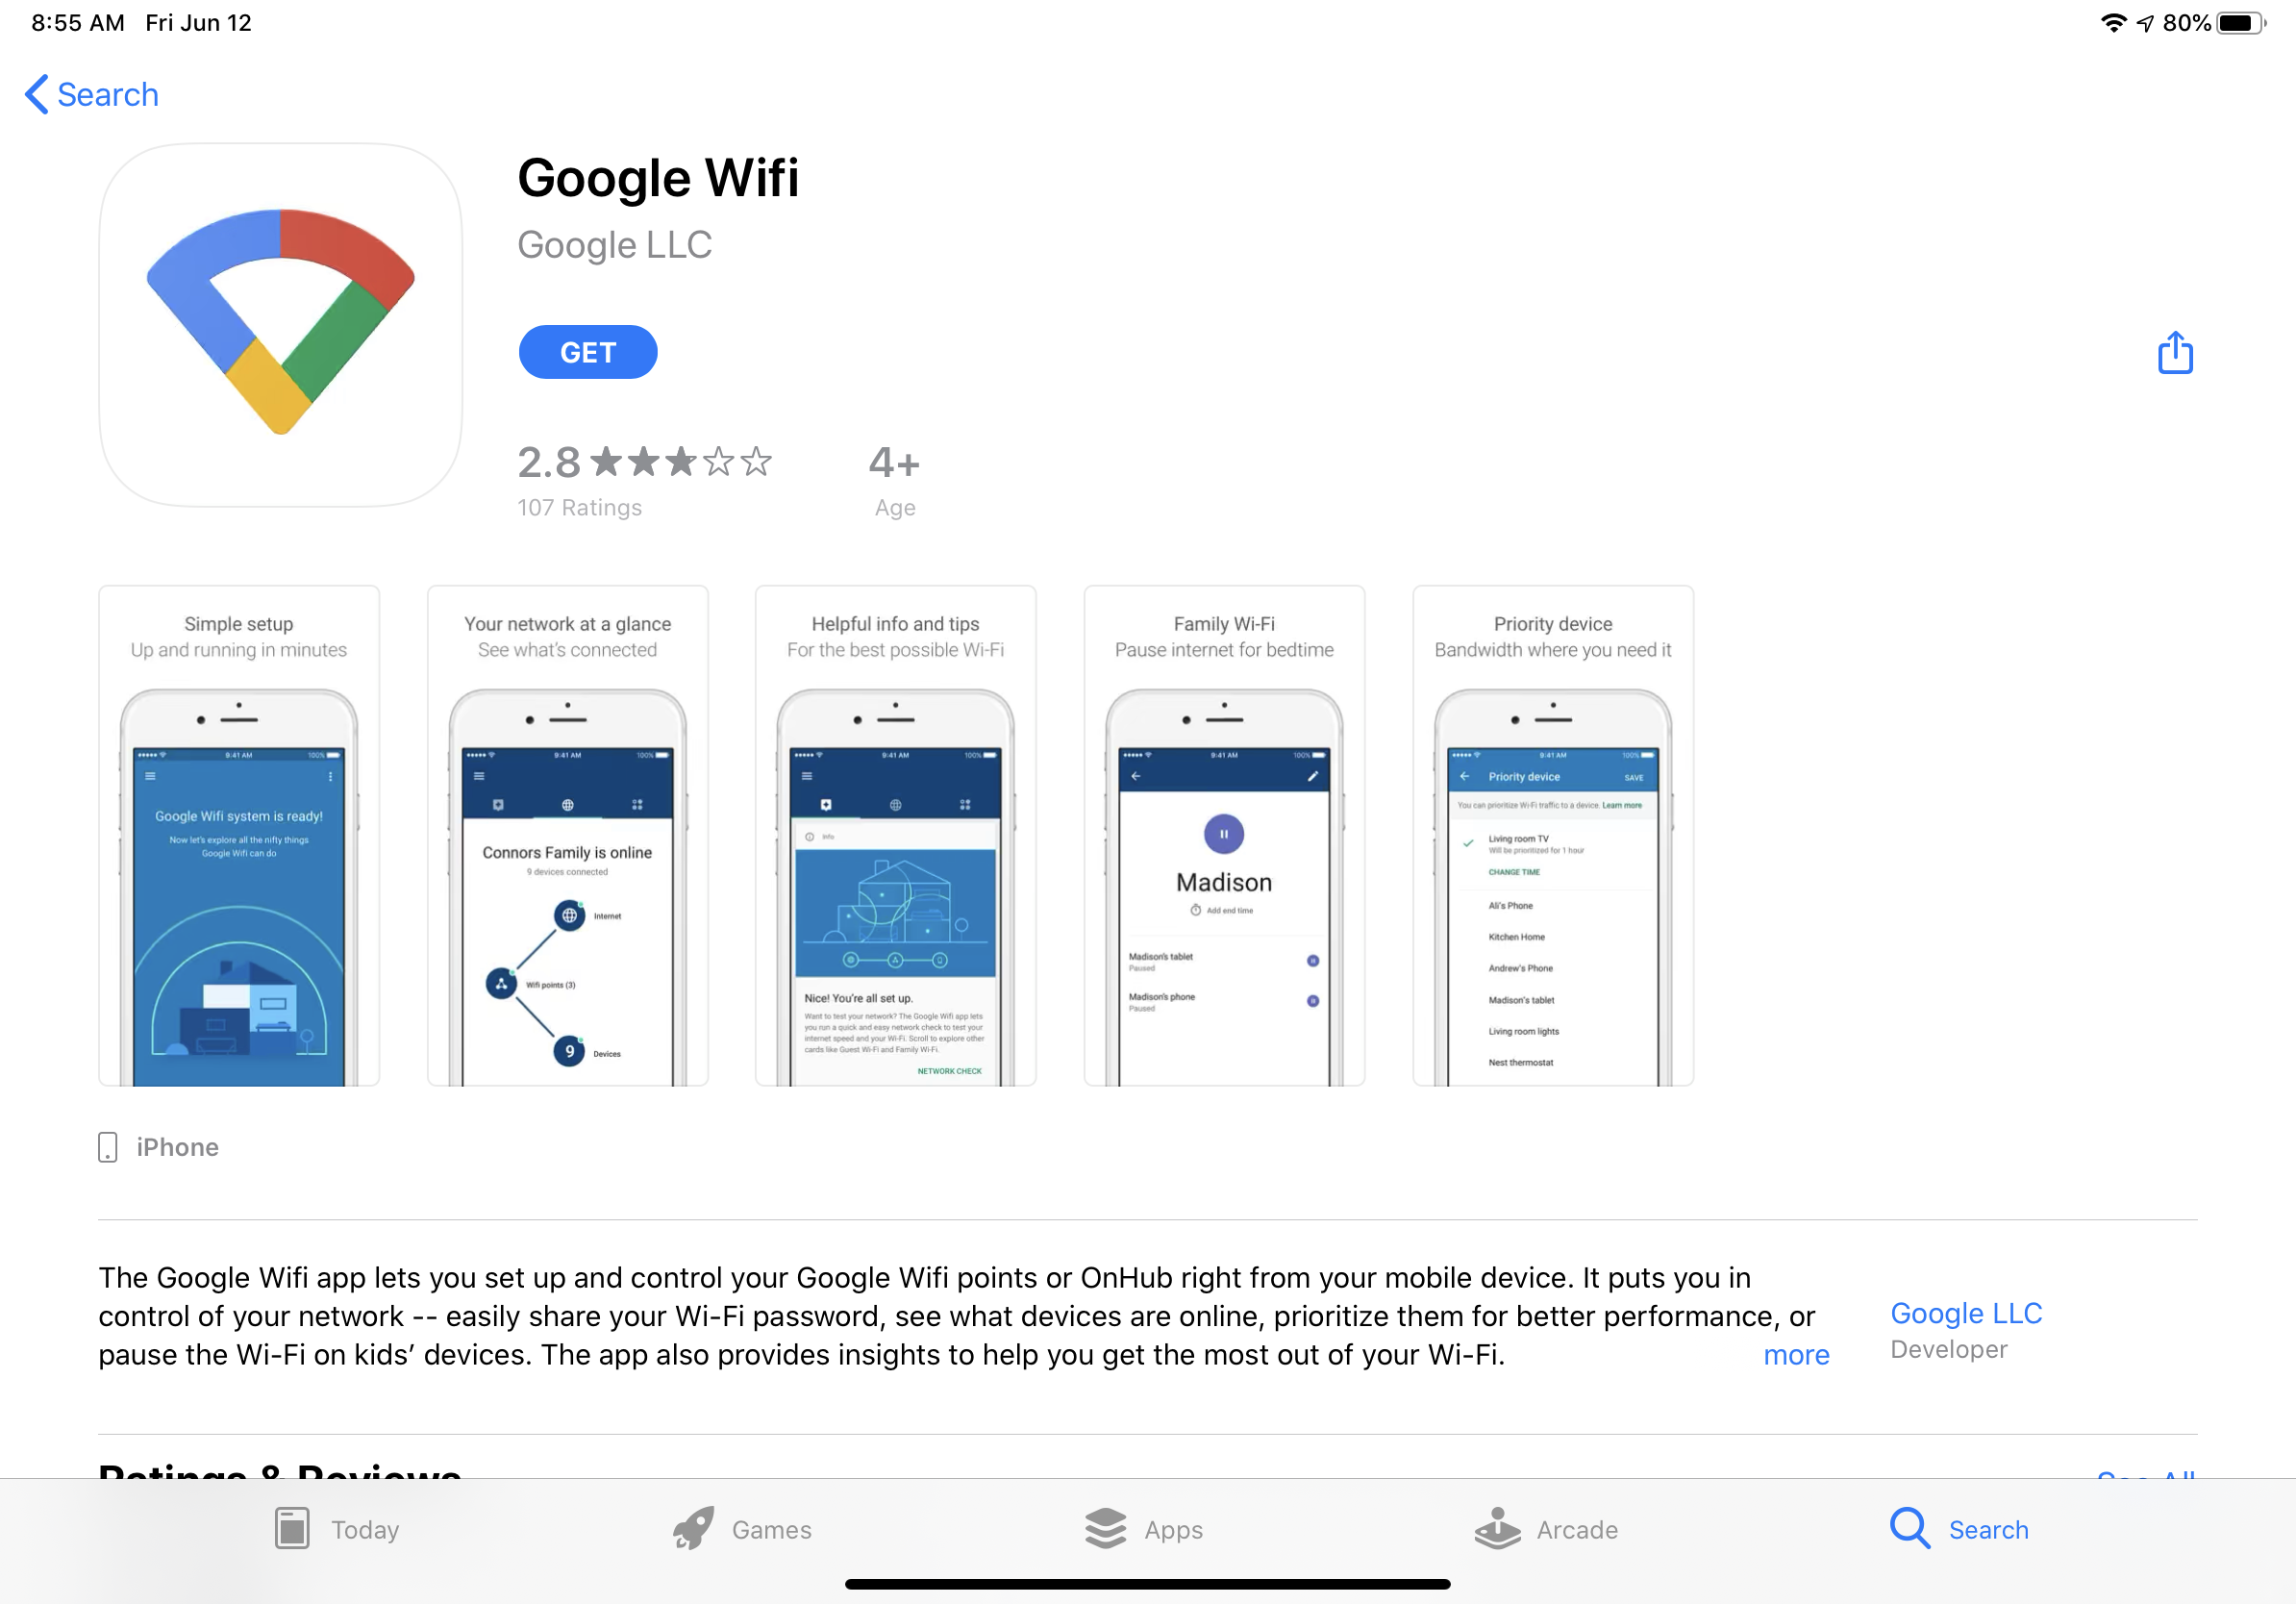 Google Wifi App Store page